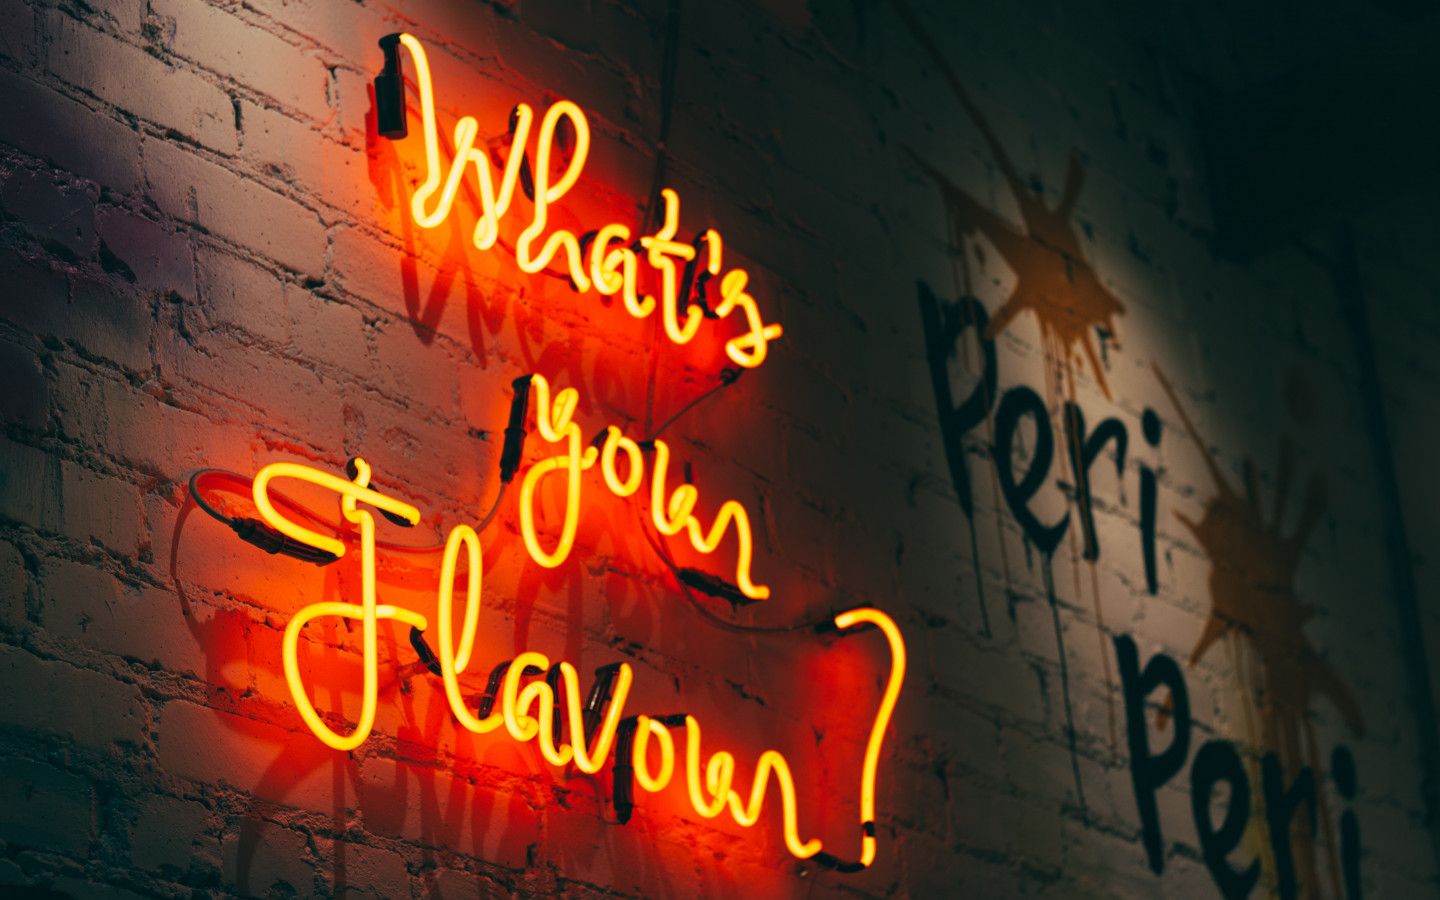 What is your flavour wallpaper 1440x900